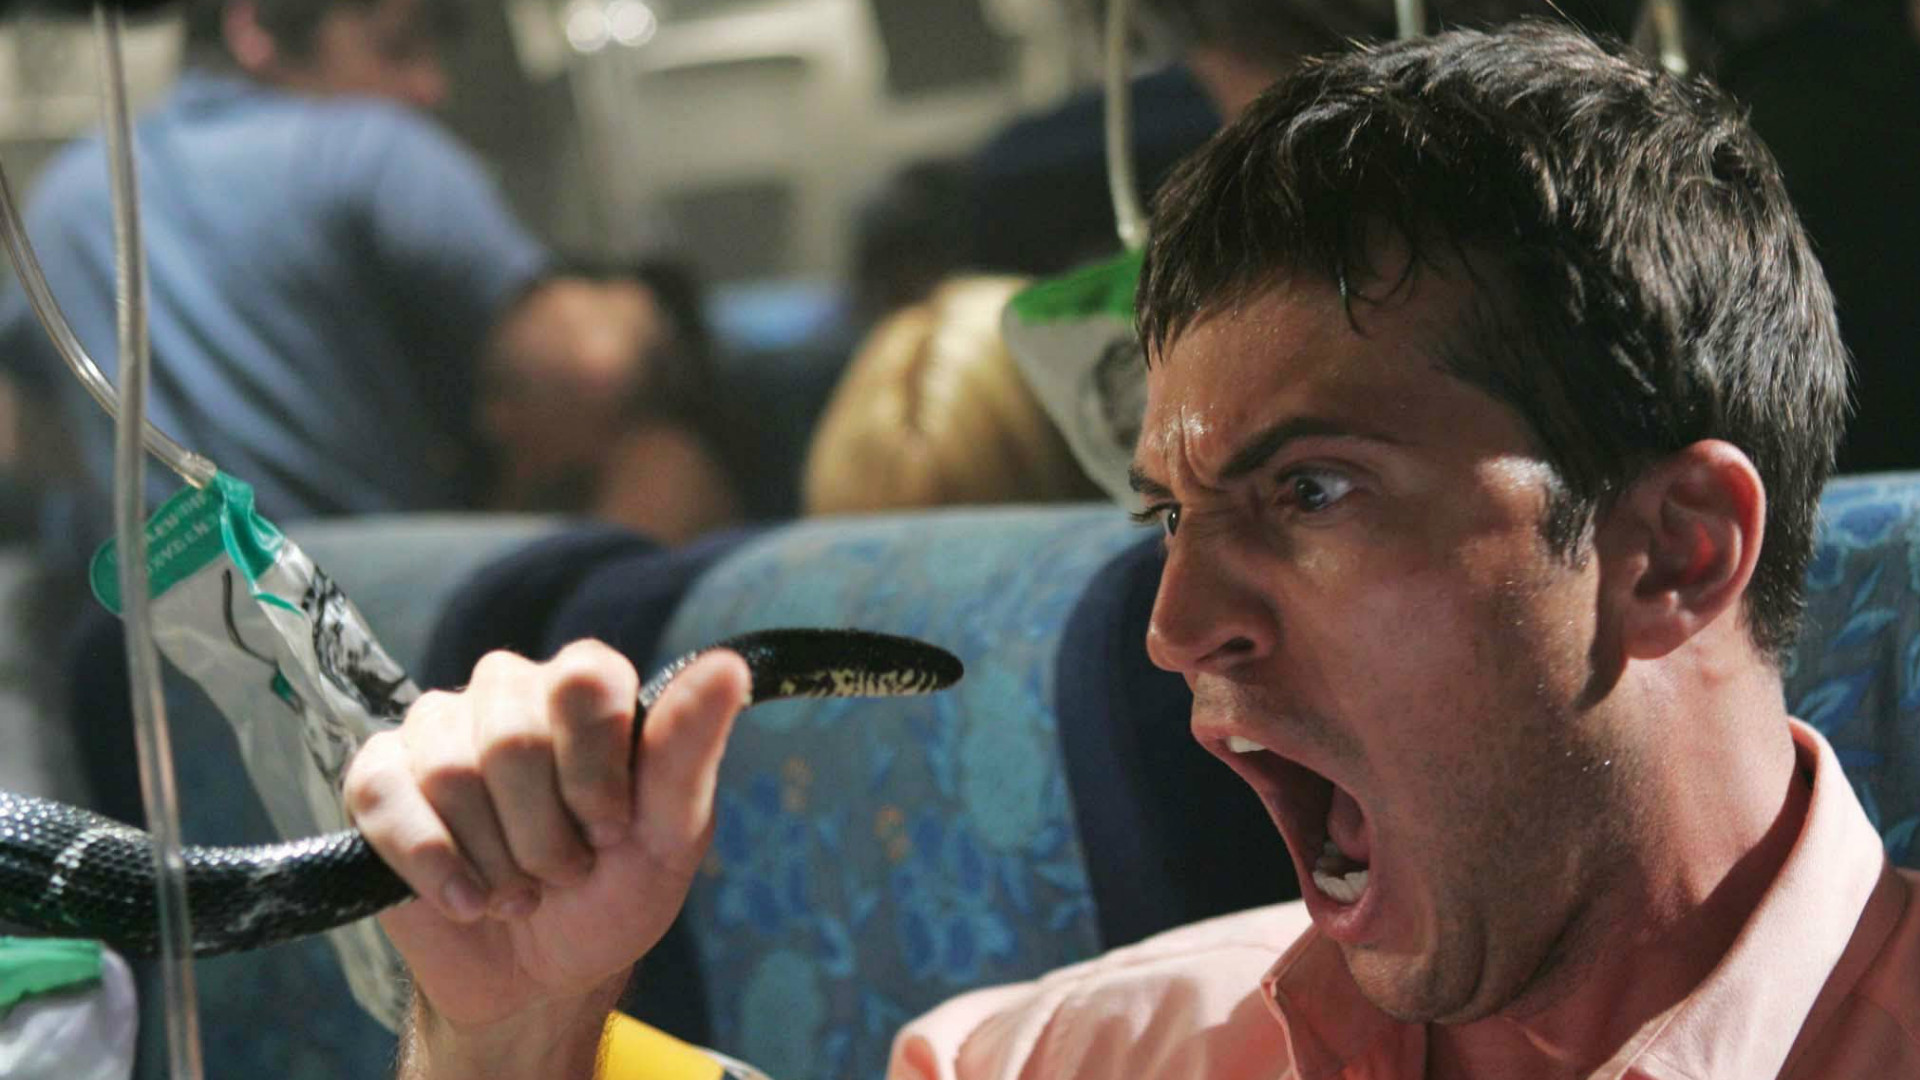 A still from Snakes On A Plane.